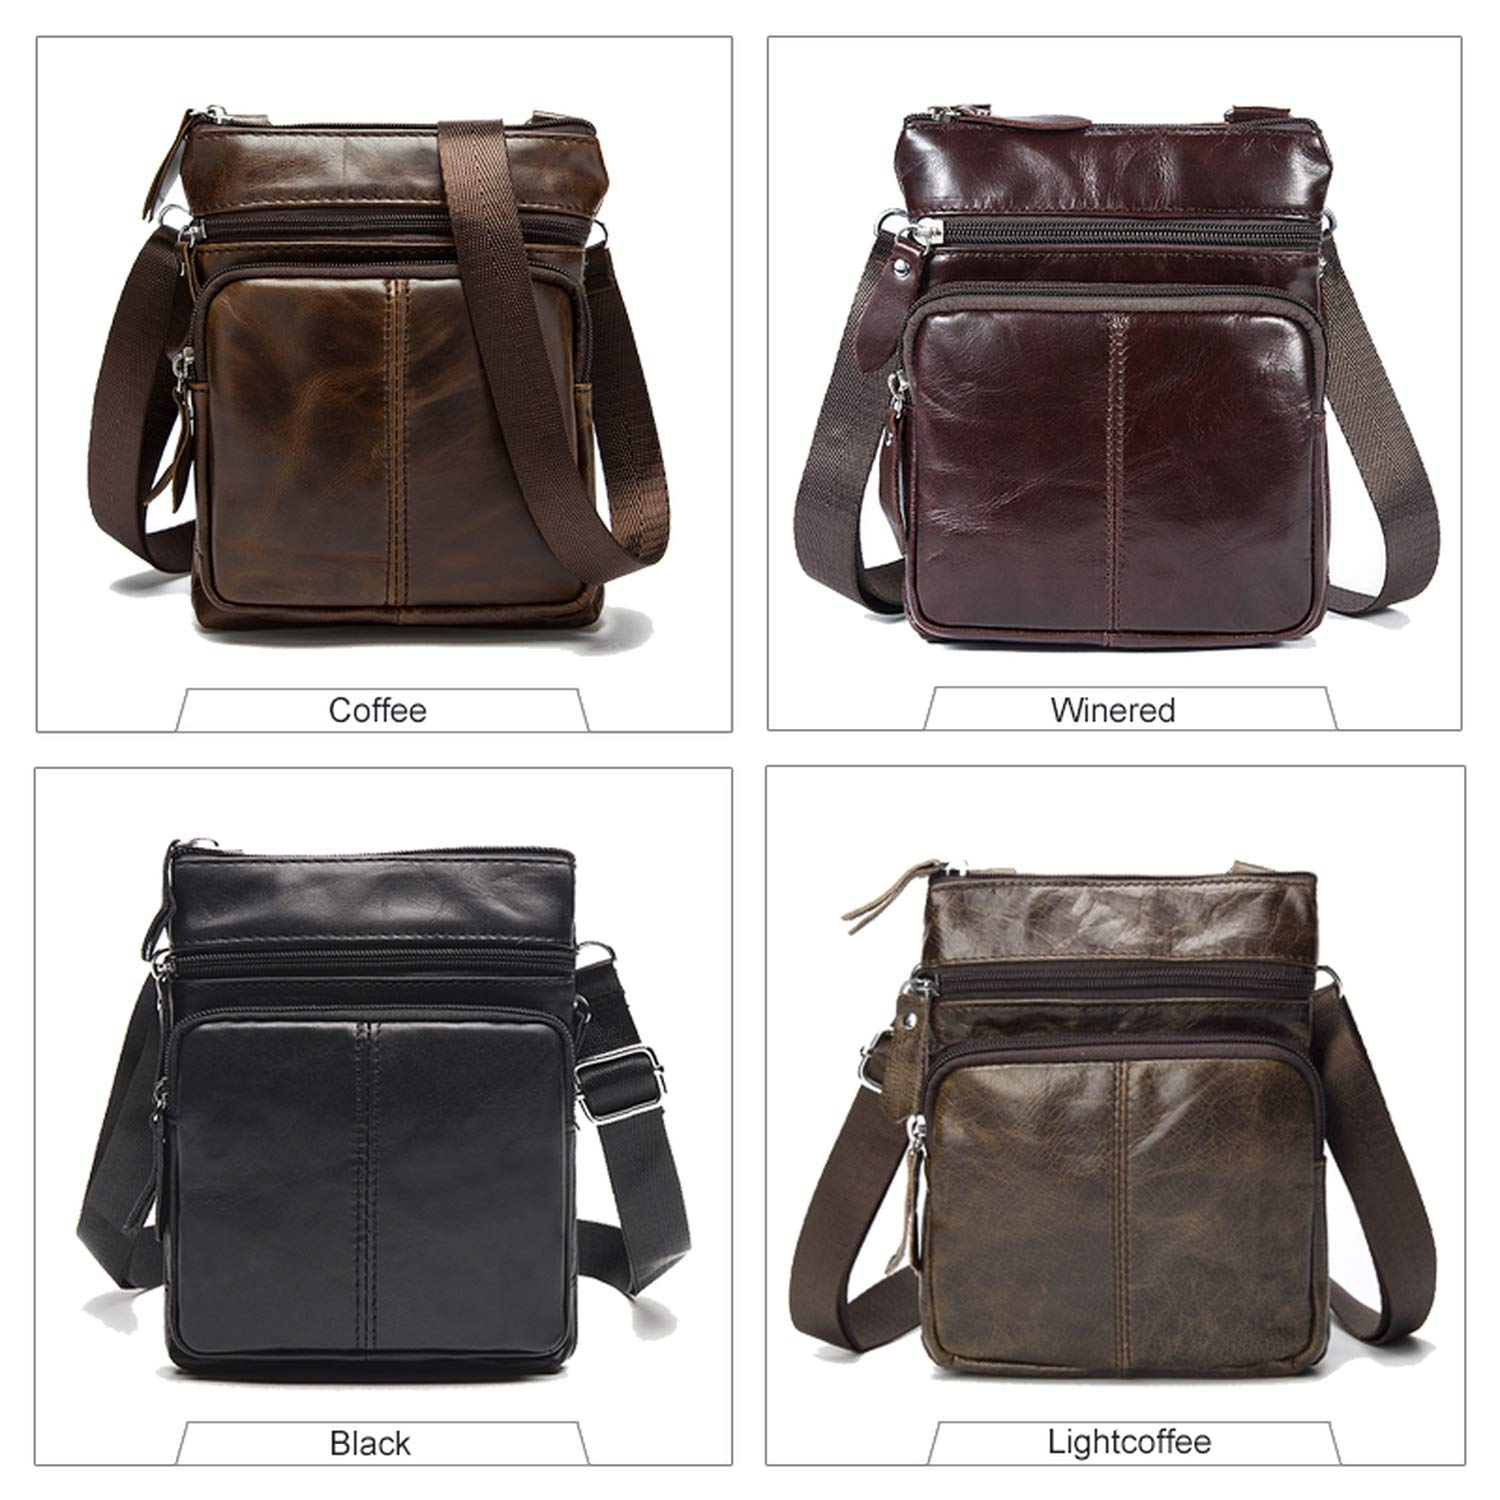 Messenger Bag MenS Shoulder Leather Bags Flap Crossbody Bags For Men Bag,701R4 Light Coffee,16Cm